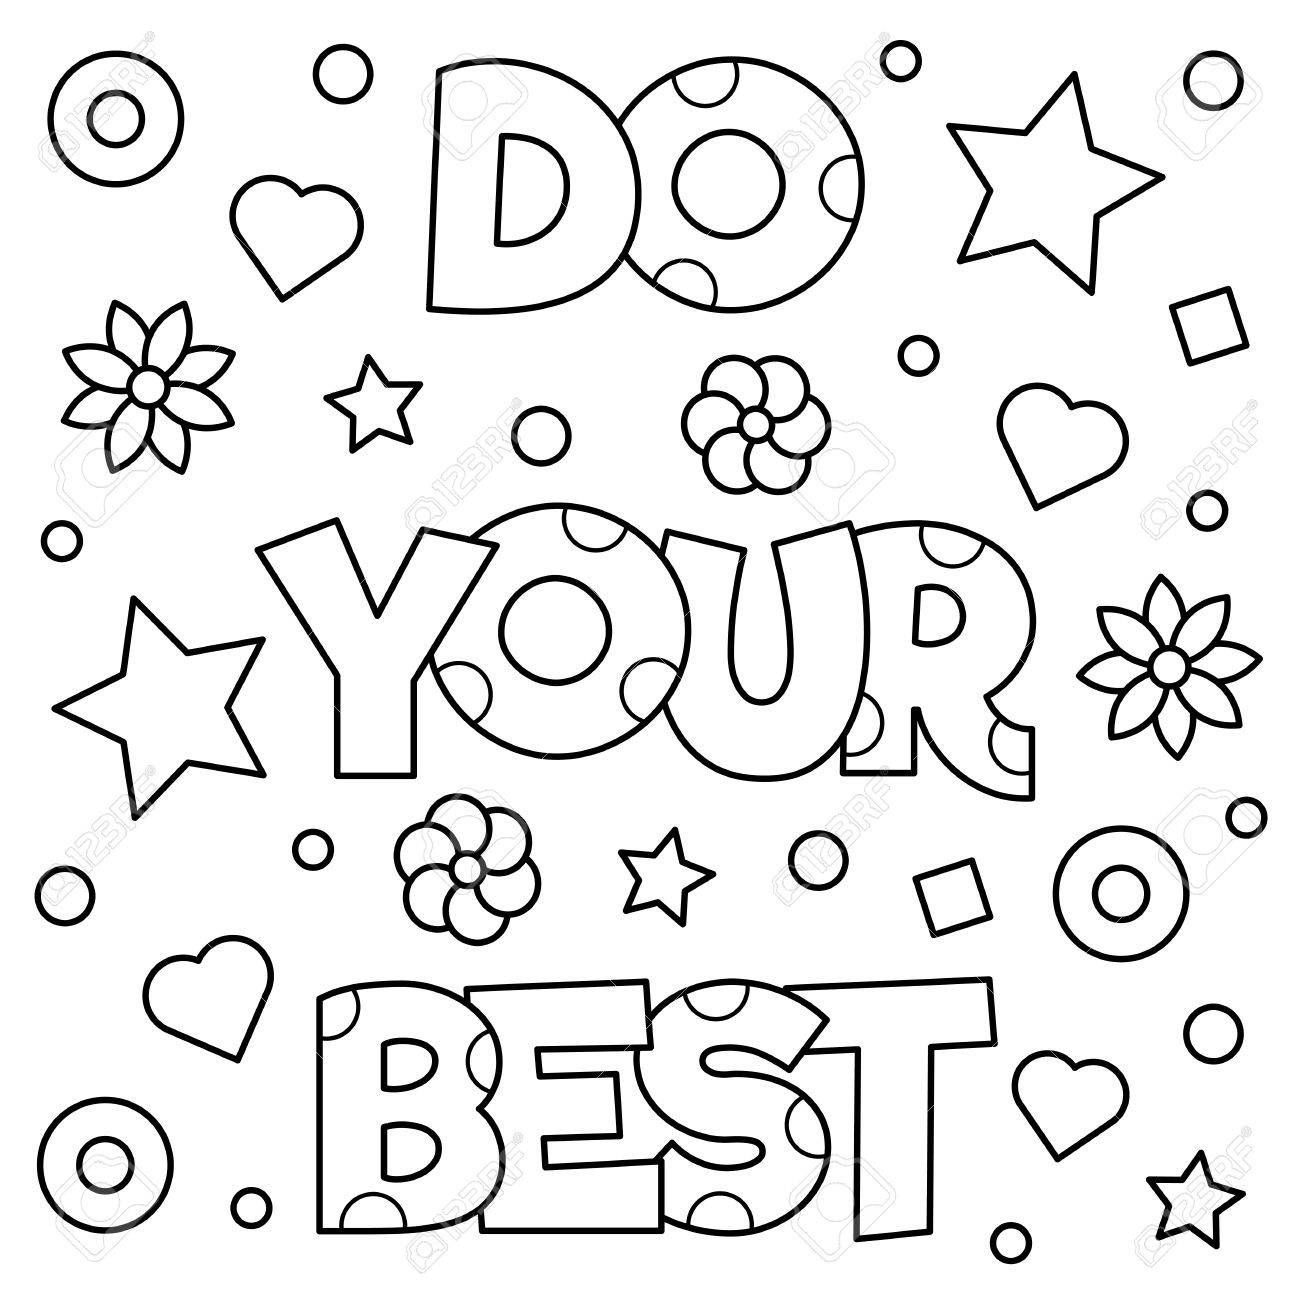 Do Your Best Coloring Page Vector Illustration Quote Coloring Pages Easy Coloring Pages Coloring Pages Inspirational